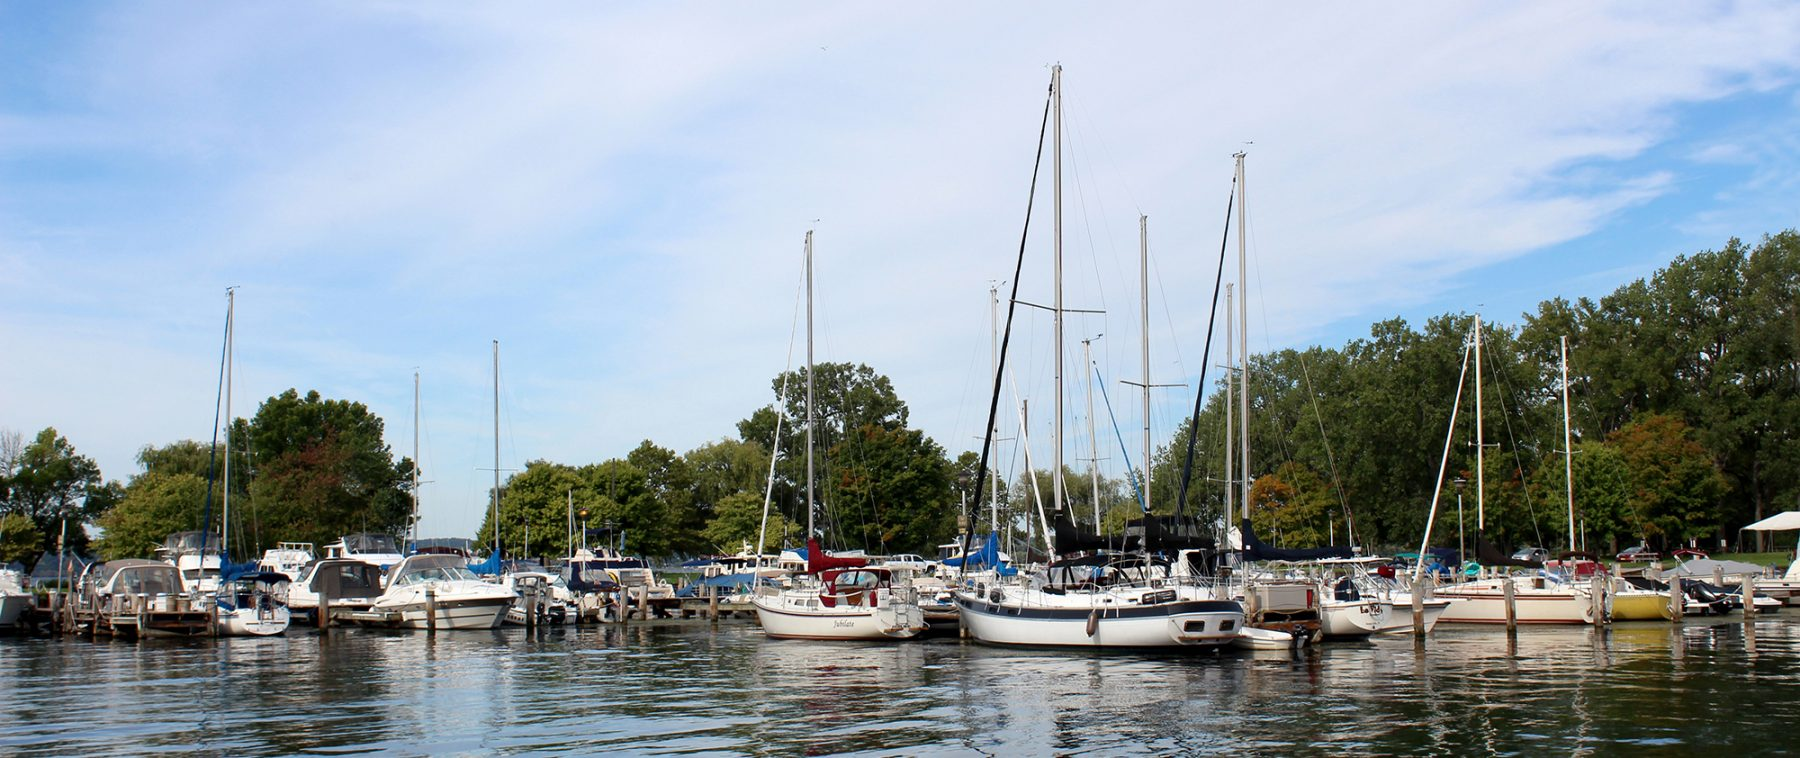 SamSen Marina sailboat and cruisers docked